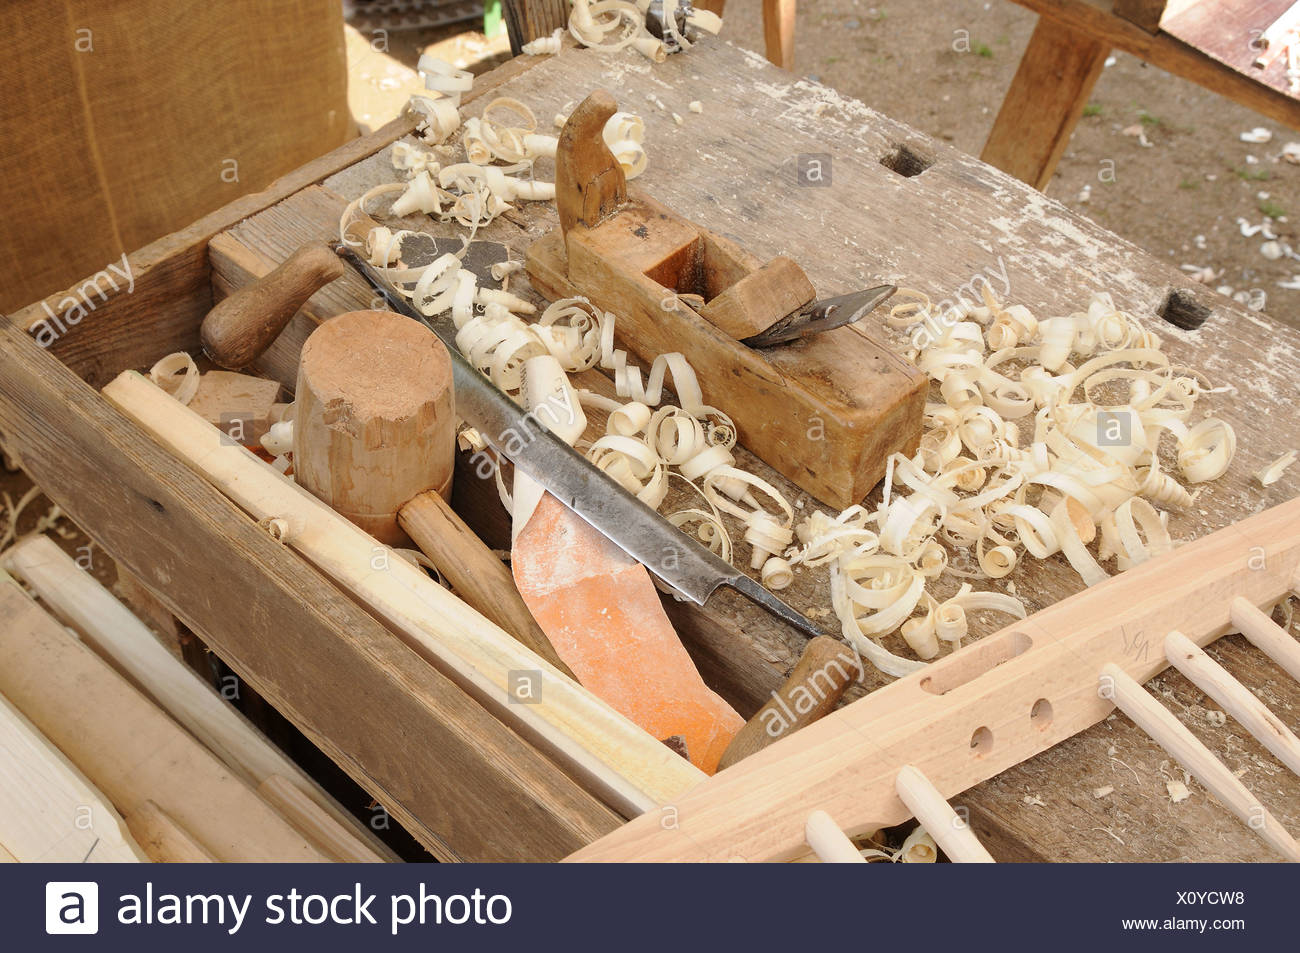 Tools in a carpenter's workshop - Stock Image